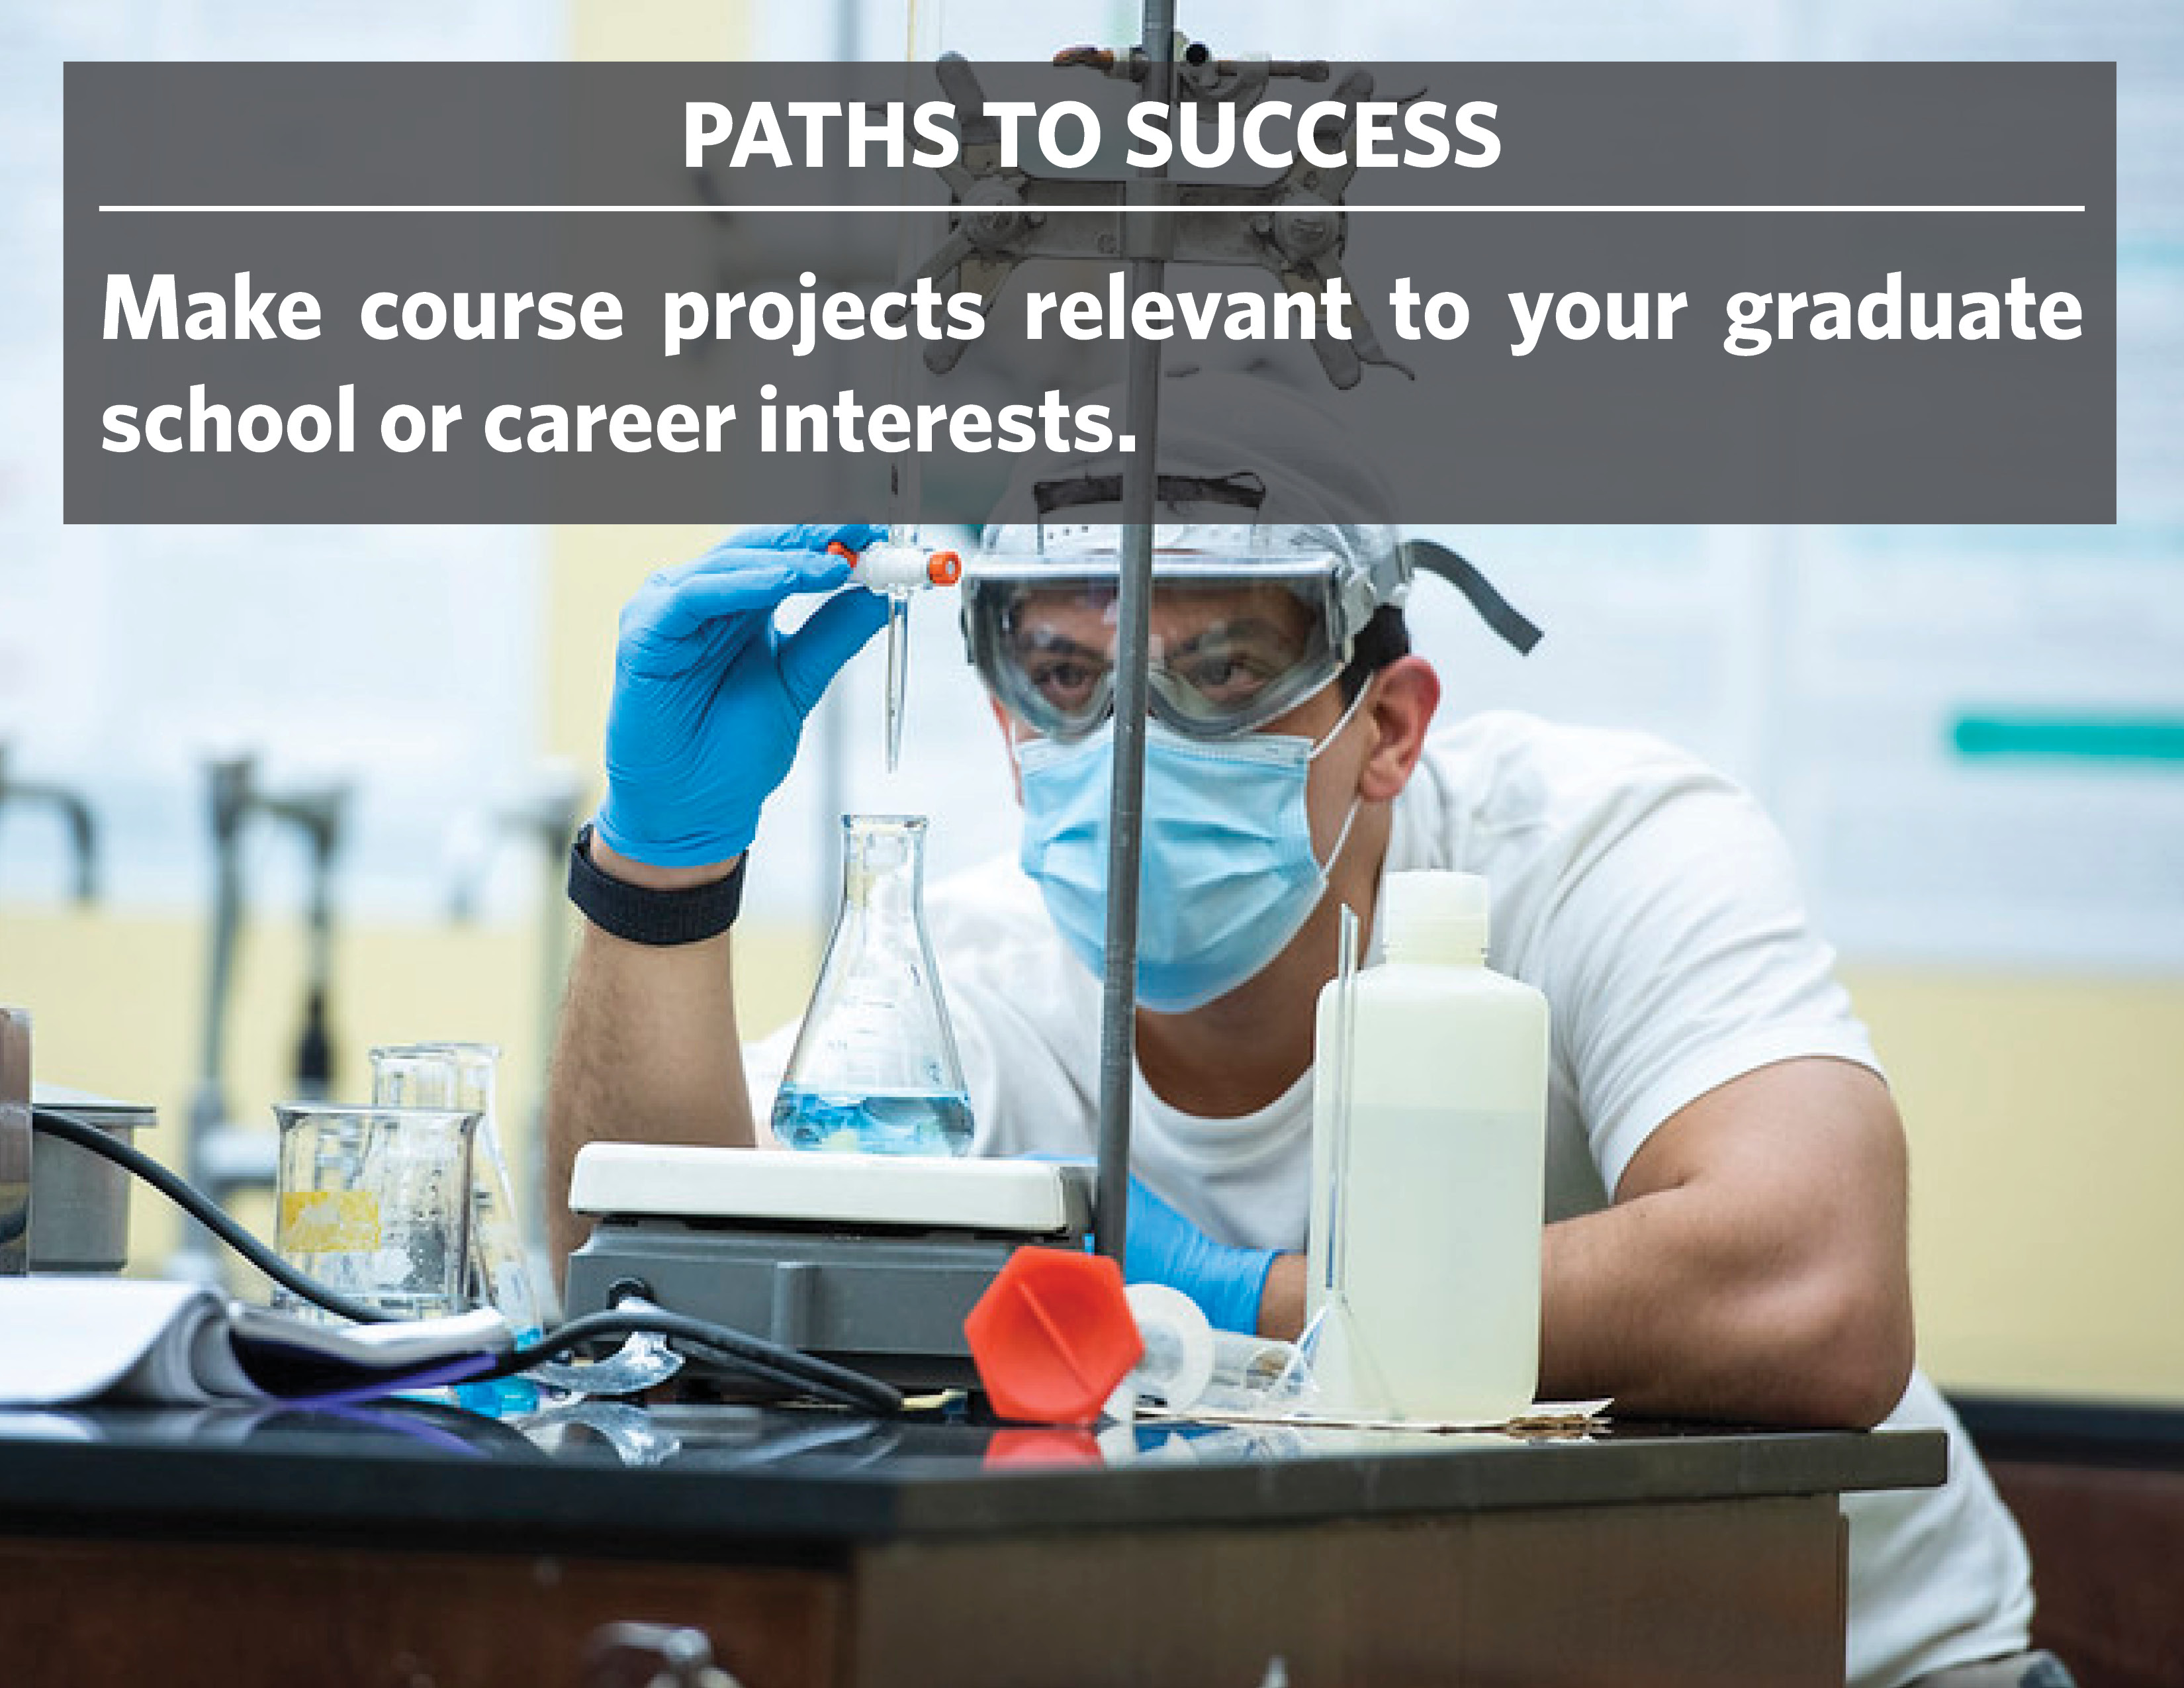 Path to Success Make course projects relevant to your graduate school or career interests